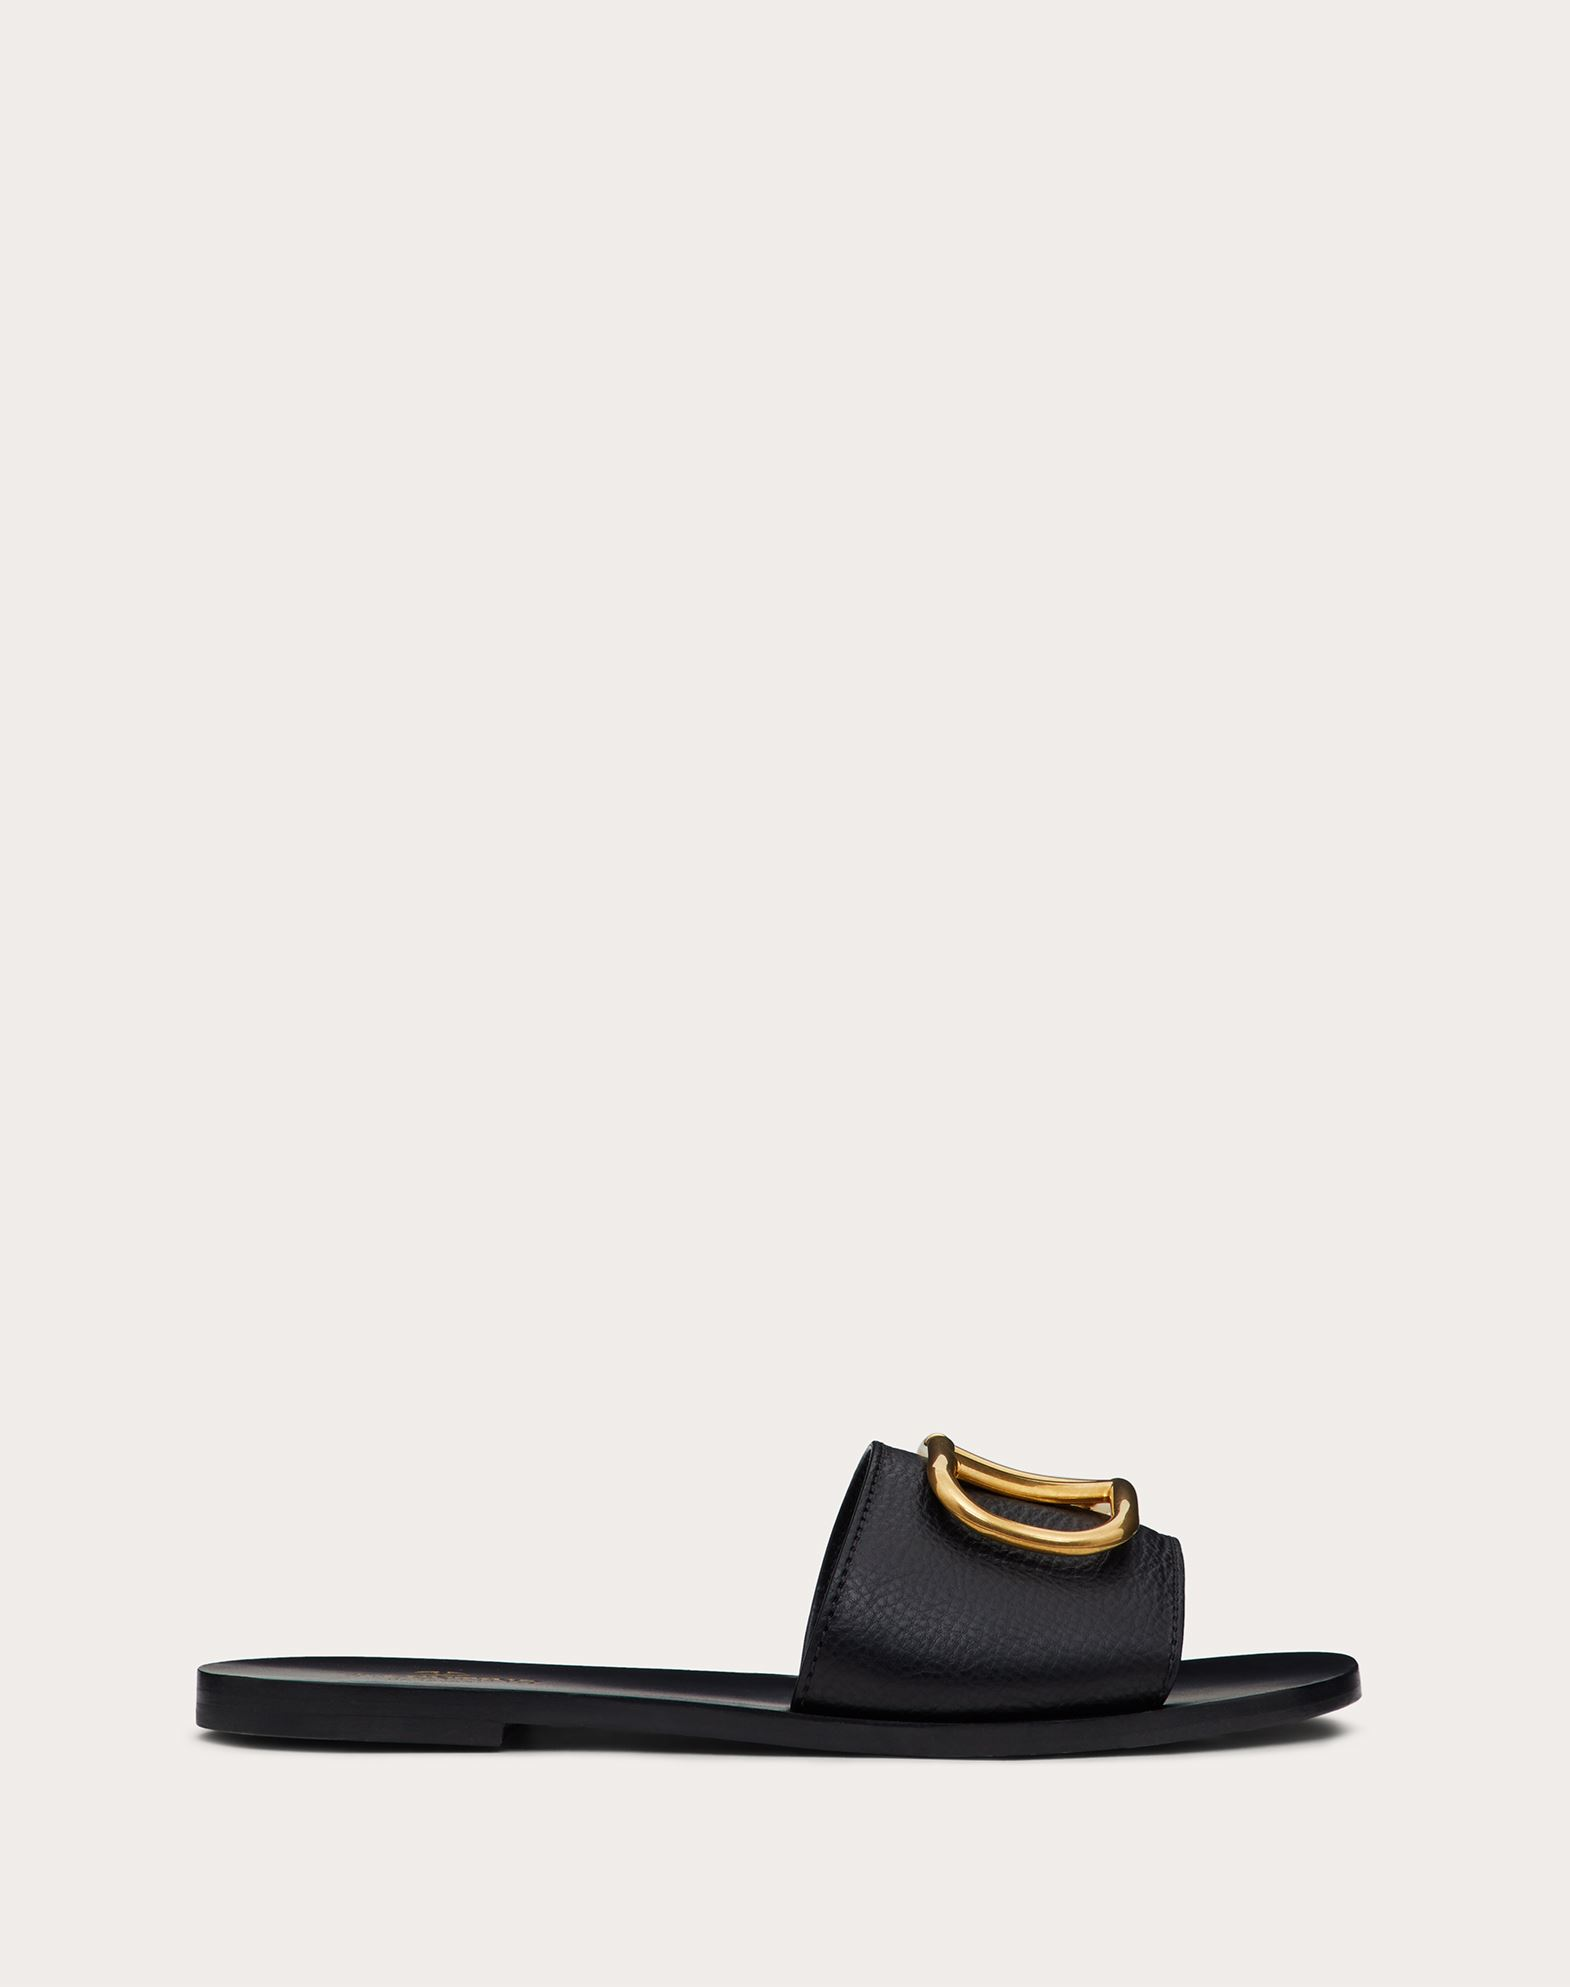 Grainy Cowhide Slip-on Sandal with VLOGO Detail 5mm